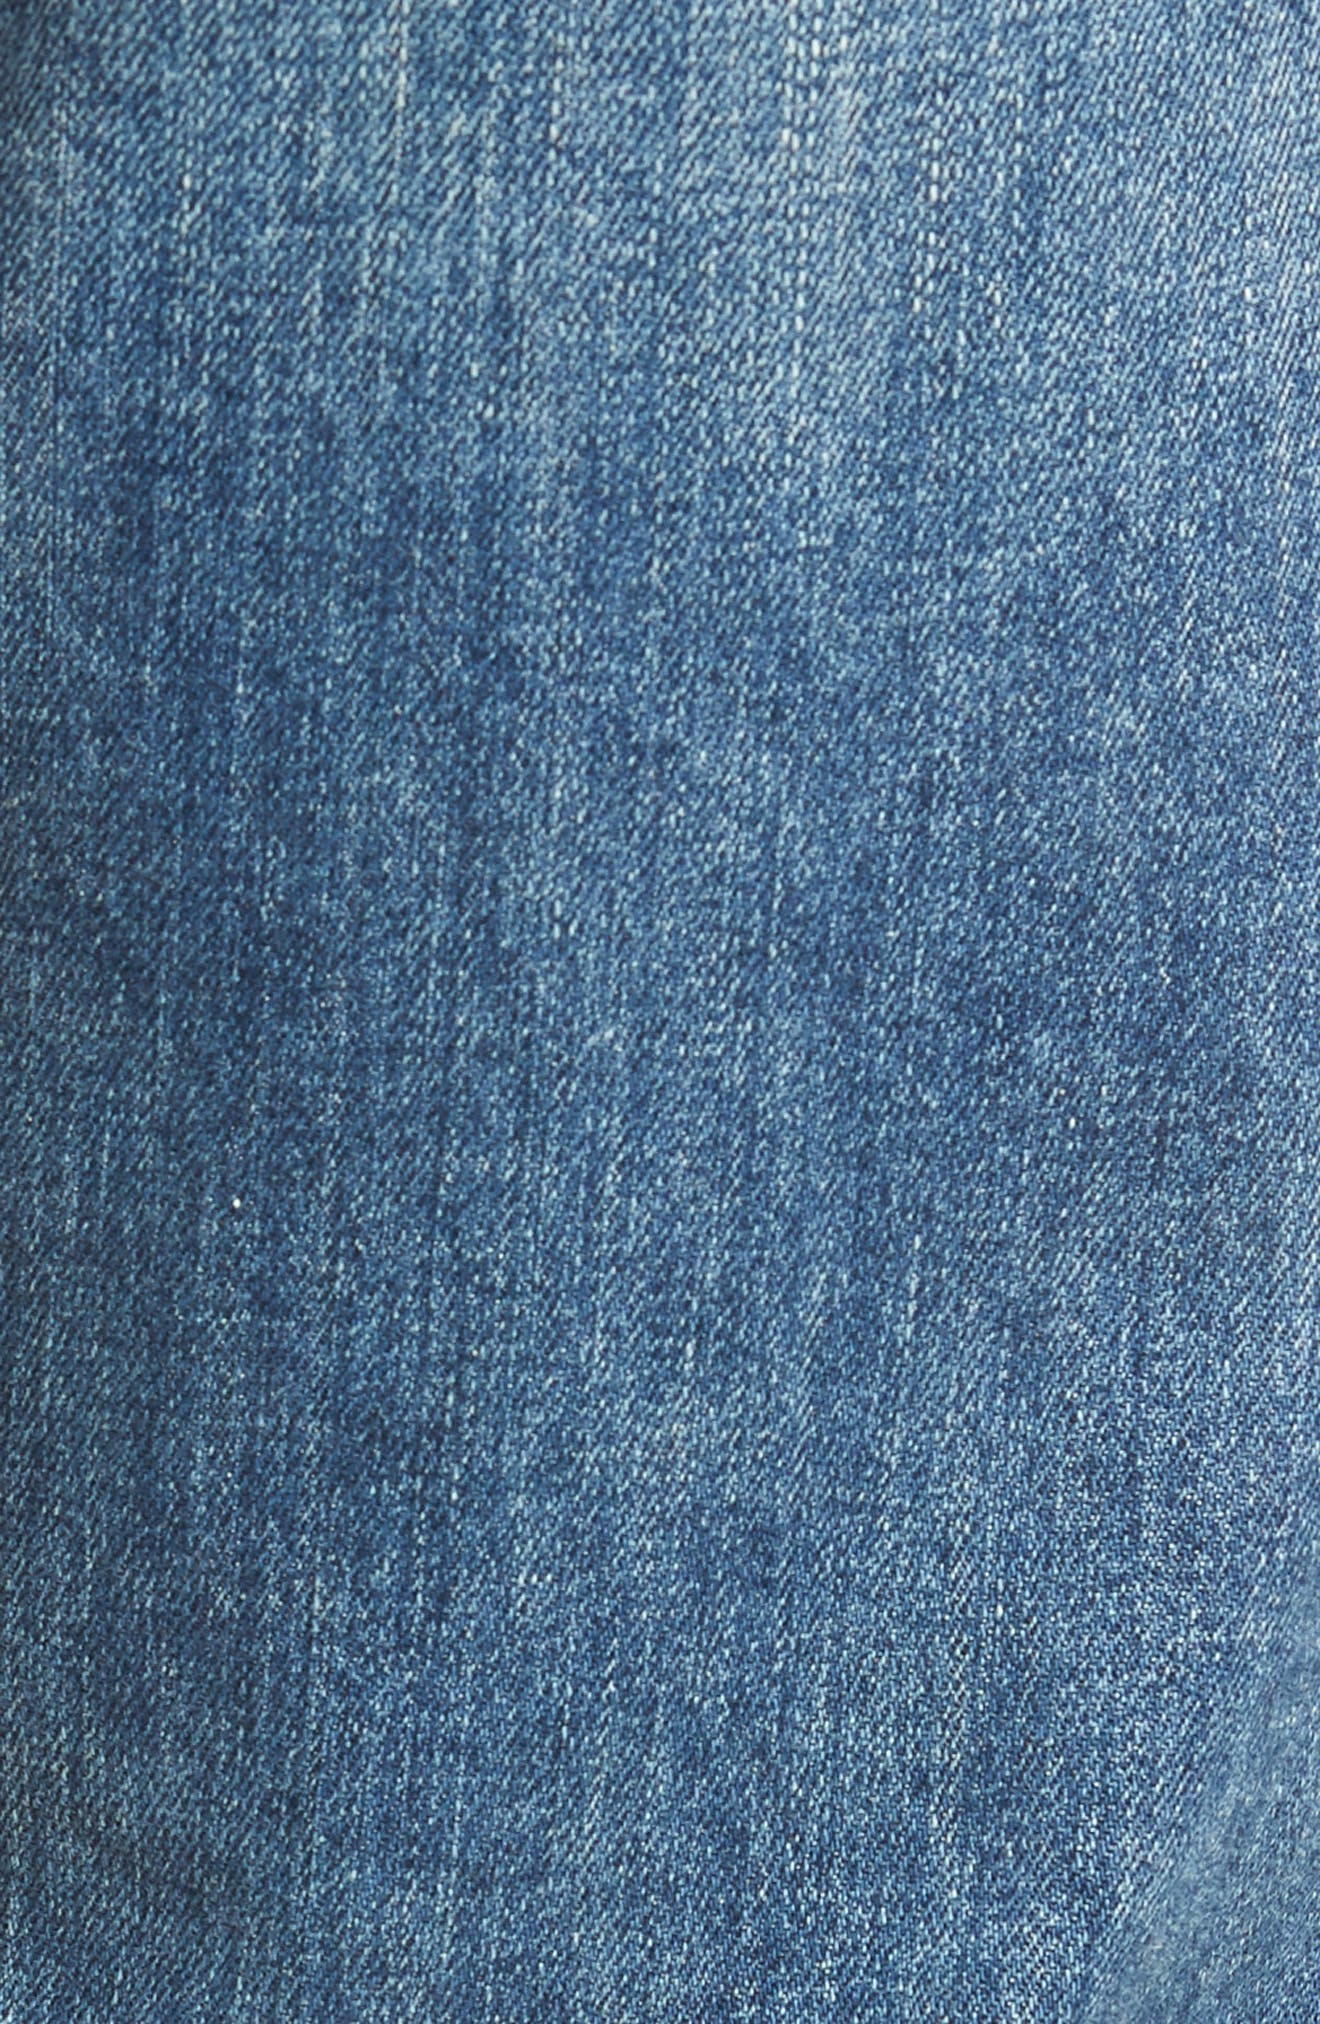 Bowery Slim Fit Jeans,                             Alternate thumbnail 5, color,                             ALAND